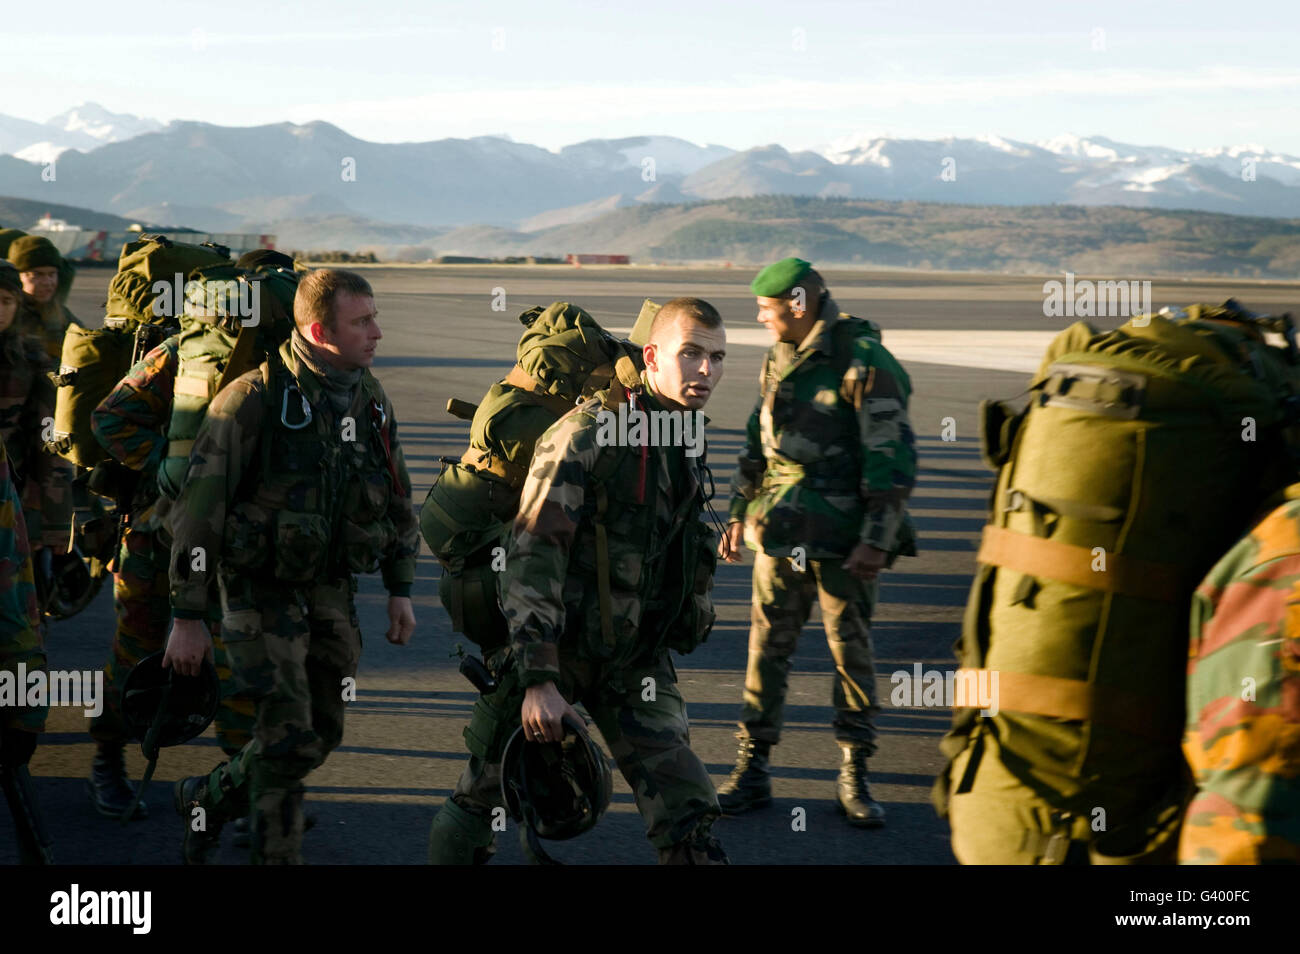 Members of the French Foreign Legion and soldiers from Belgium (with yellow markings in uniforms) walk across the - Stock Image